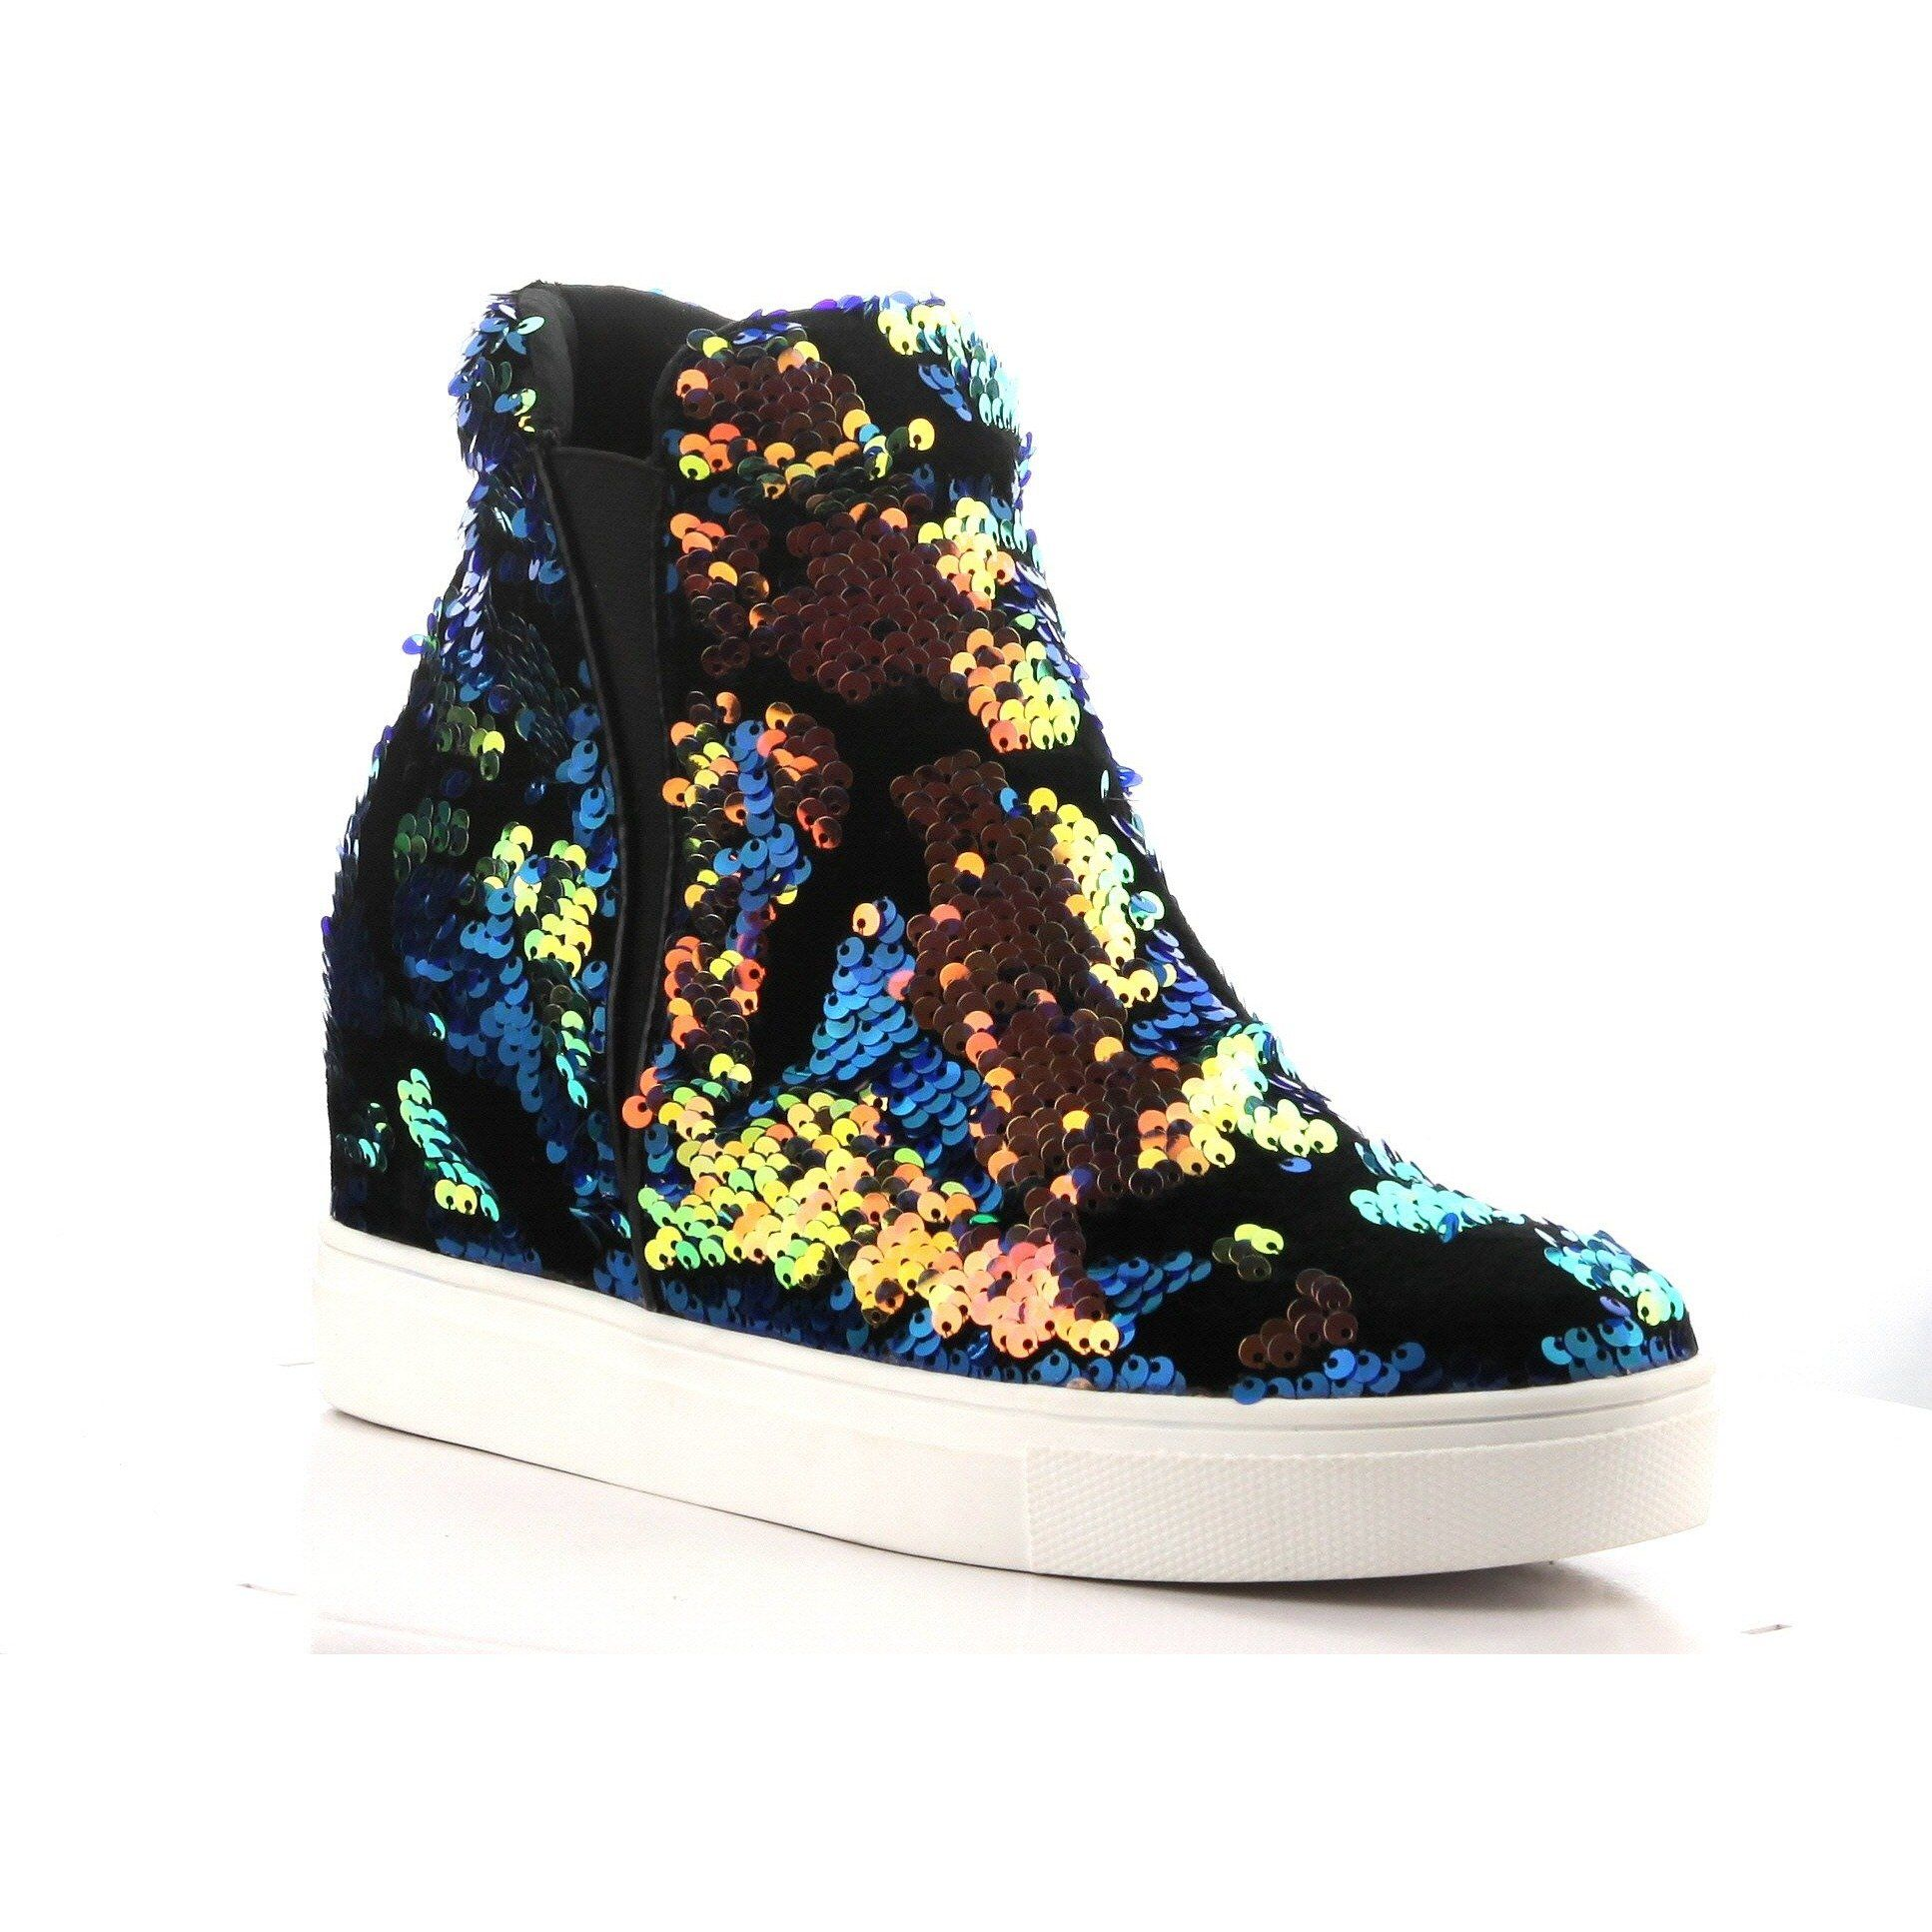 cd76f2a63ddb Orange Velvet Holographic Sequins High Top Wedge Sneaker